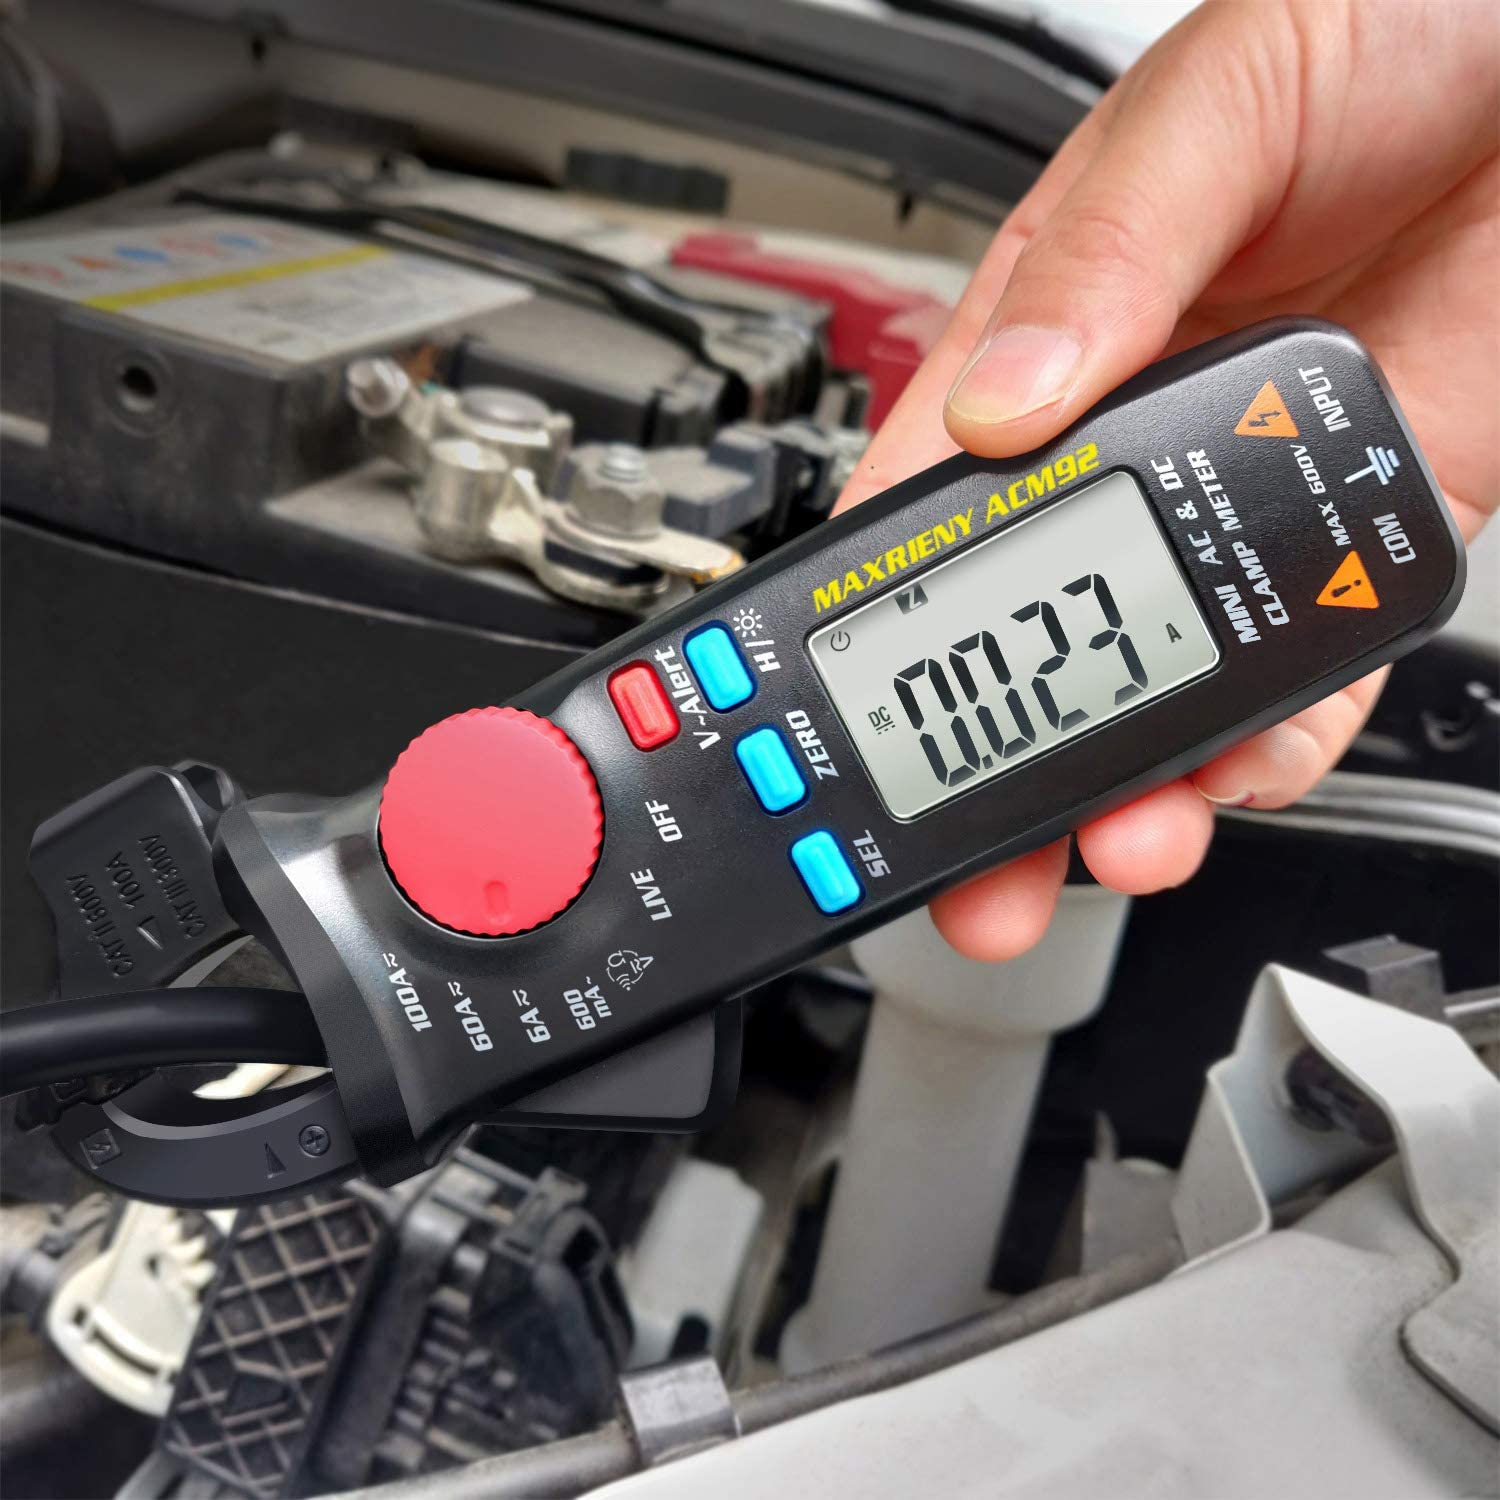 MAXRIENY San Antonio Mall DC Clamp Multimeter True Counts Meter RMS Digital Fixed price for sale 6000